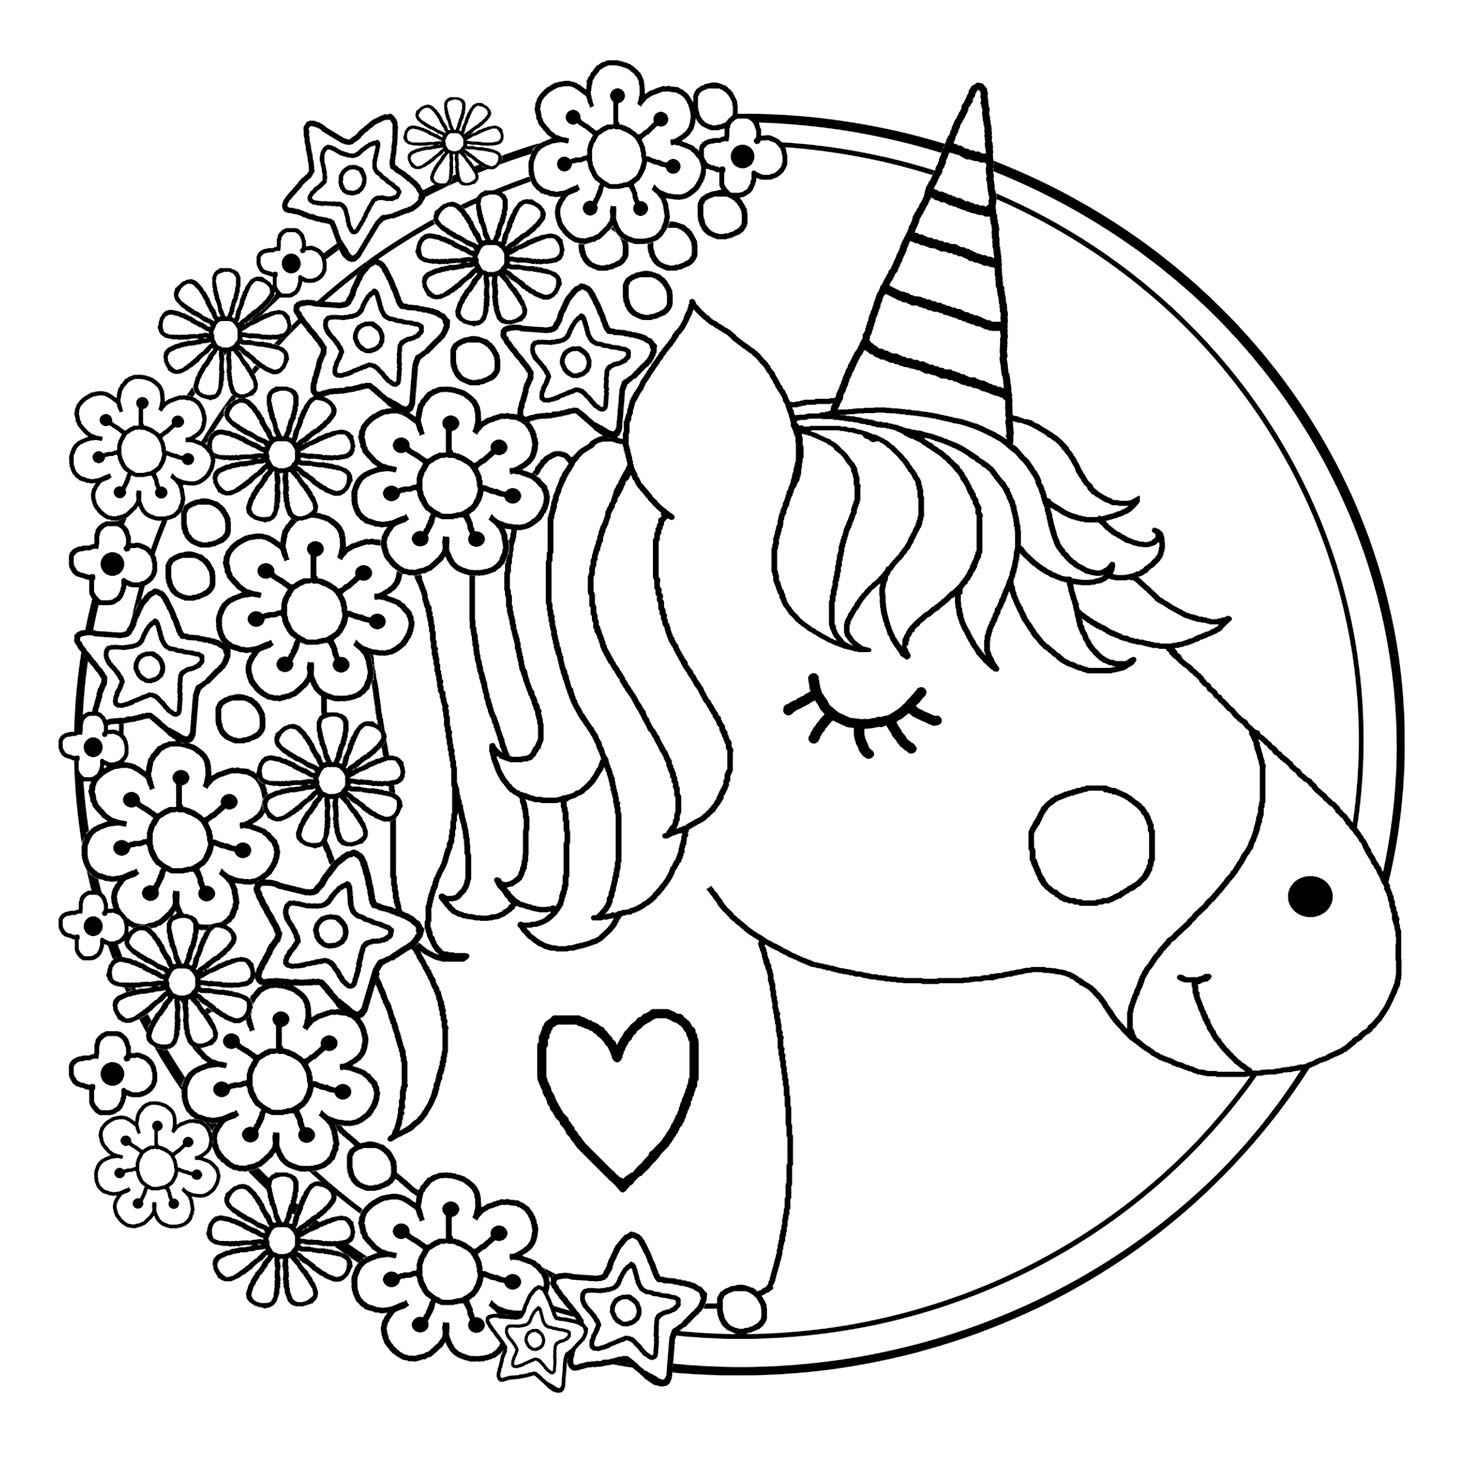 Unicorns Free To Color For Kids Unicorns Kids Coloring Pages